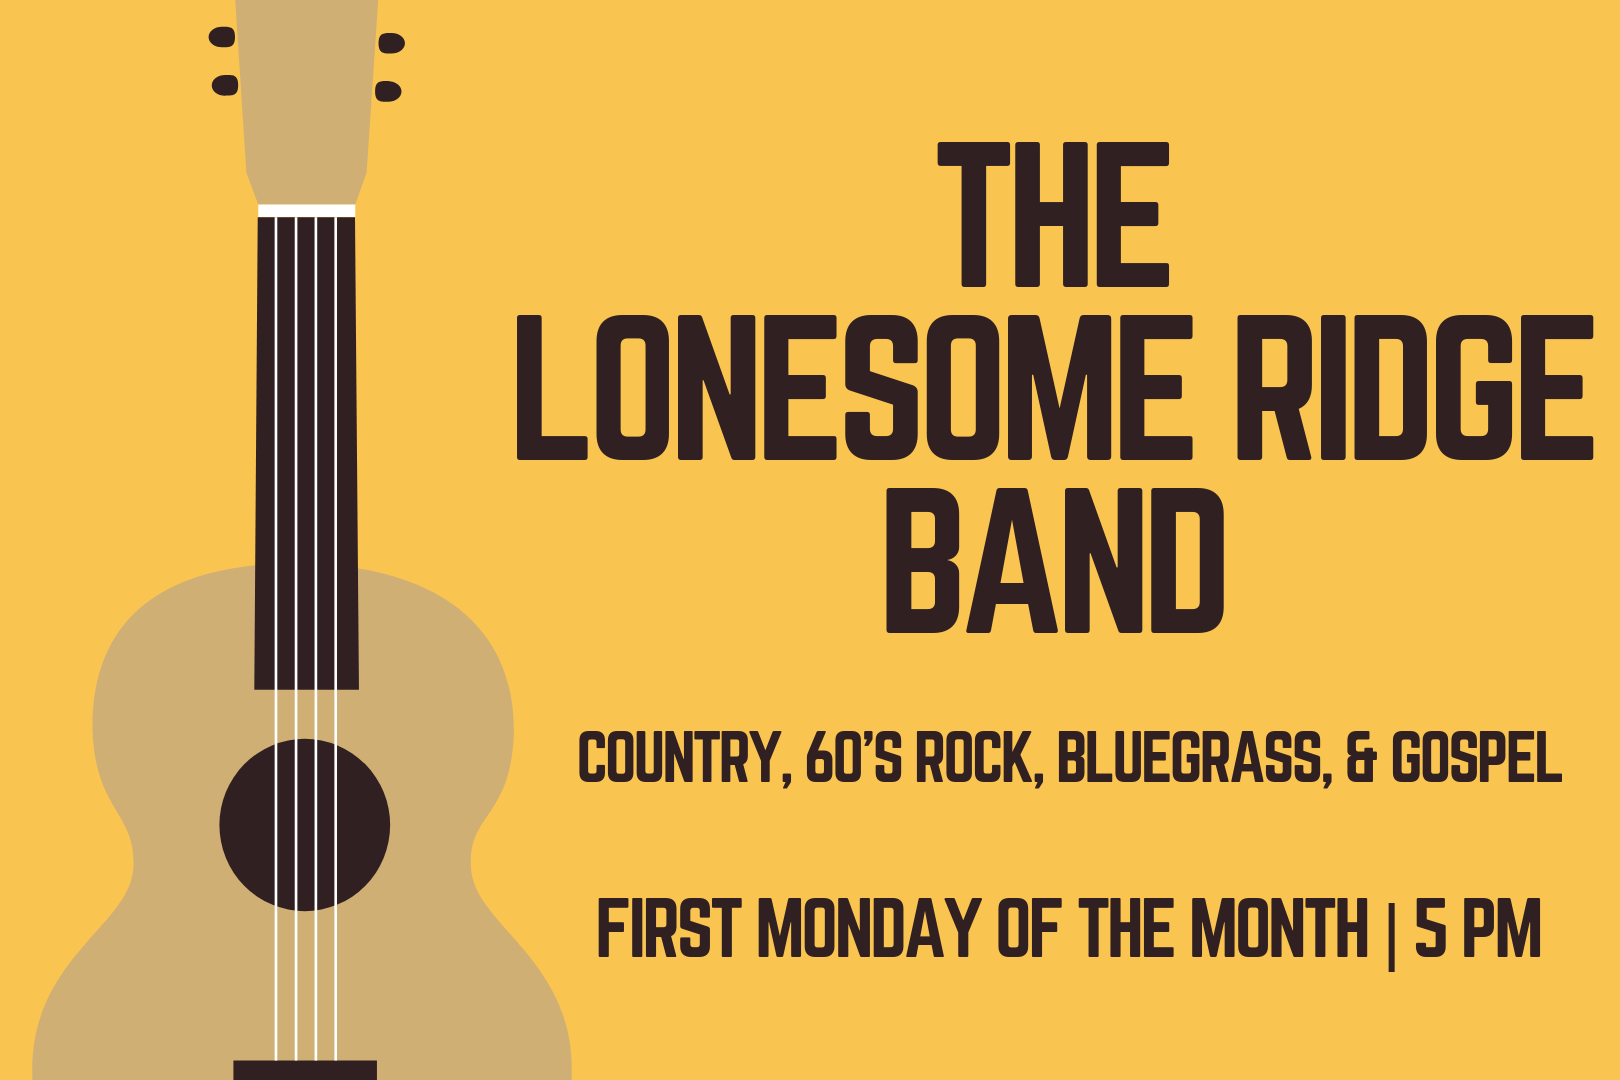 Lonesome Ridge Band